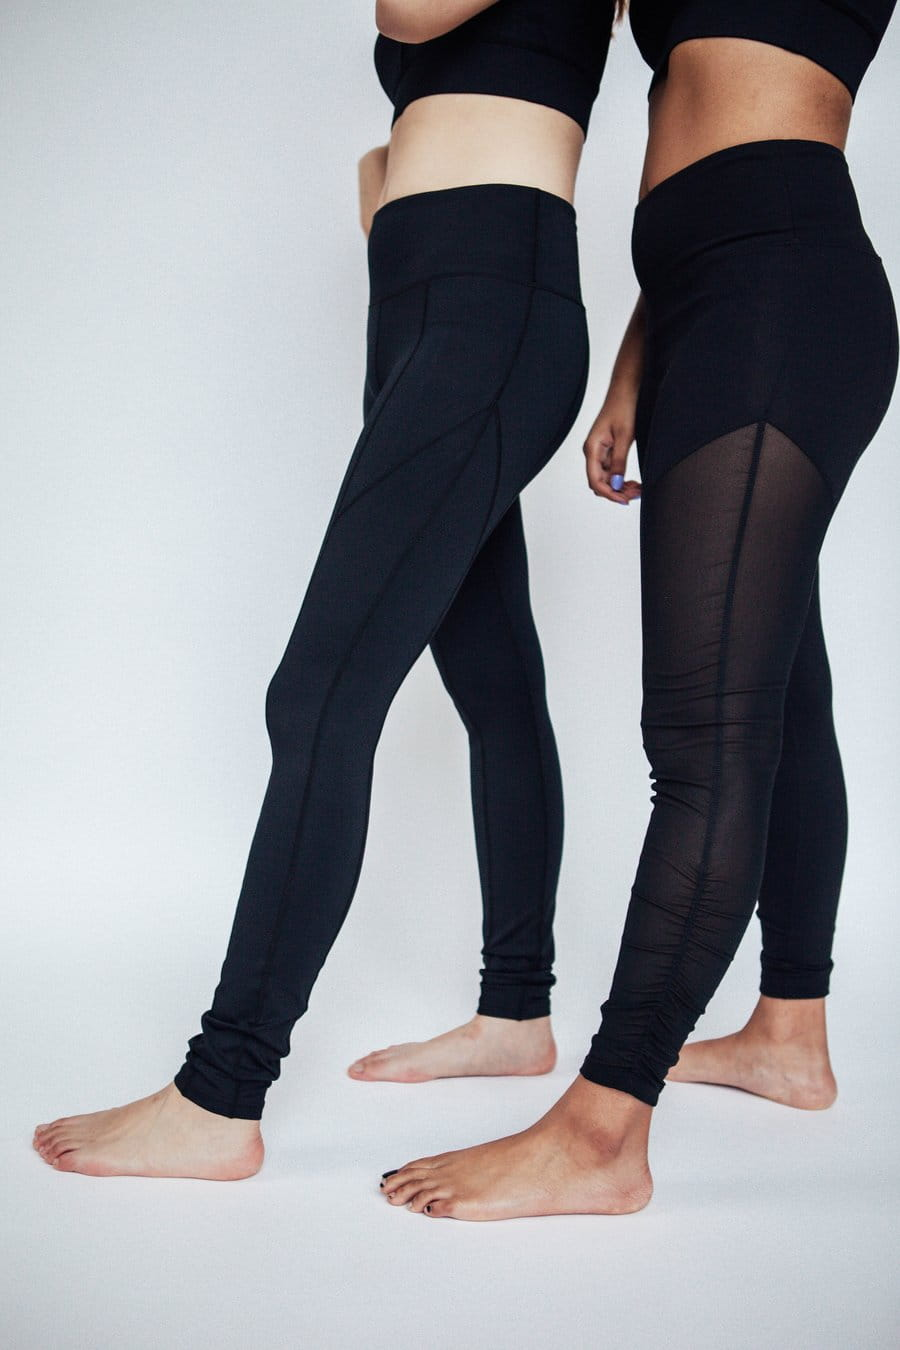 Black Breezy Leggings, Mesh Yoga Pants | Black Mesh Cutout Leggings | Shop Grit & Zest